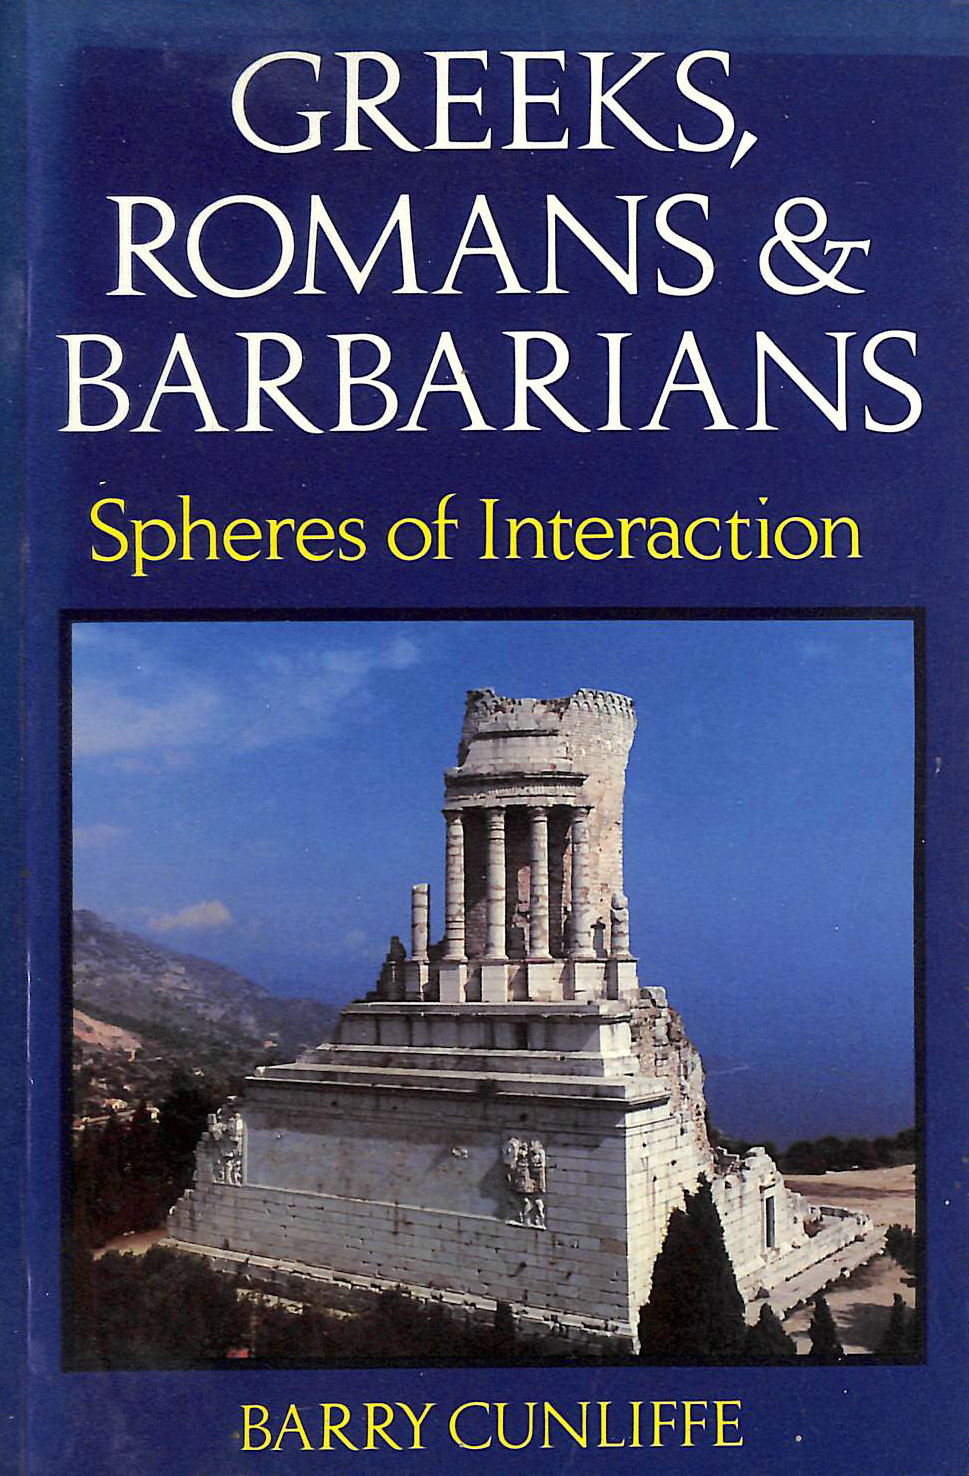 Image for Greeks, Romans and Barbarians: Spheres of Influence